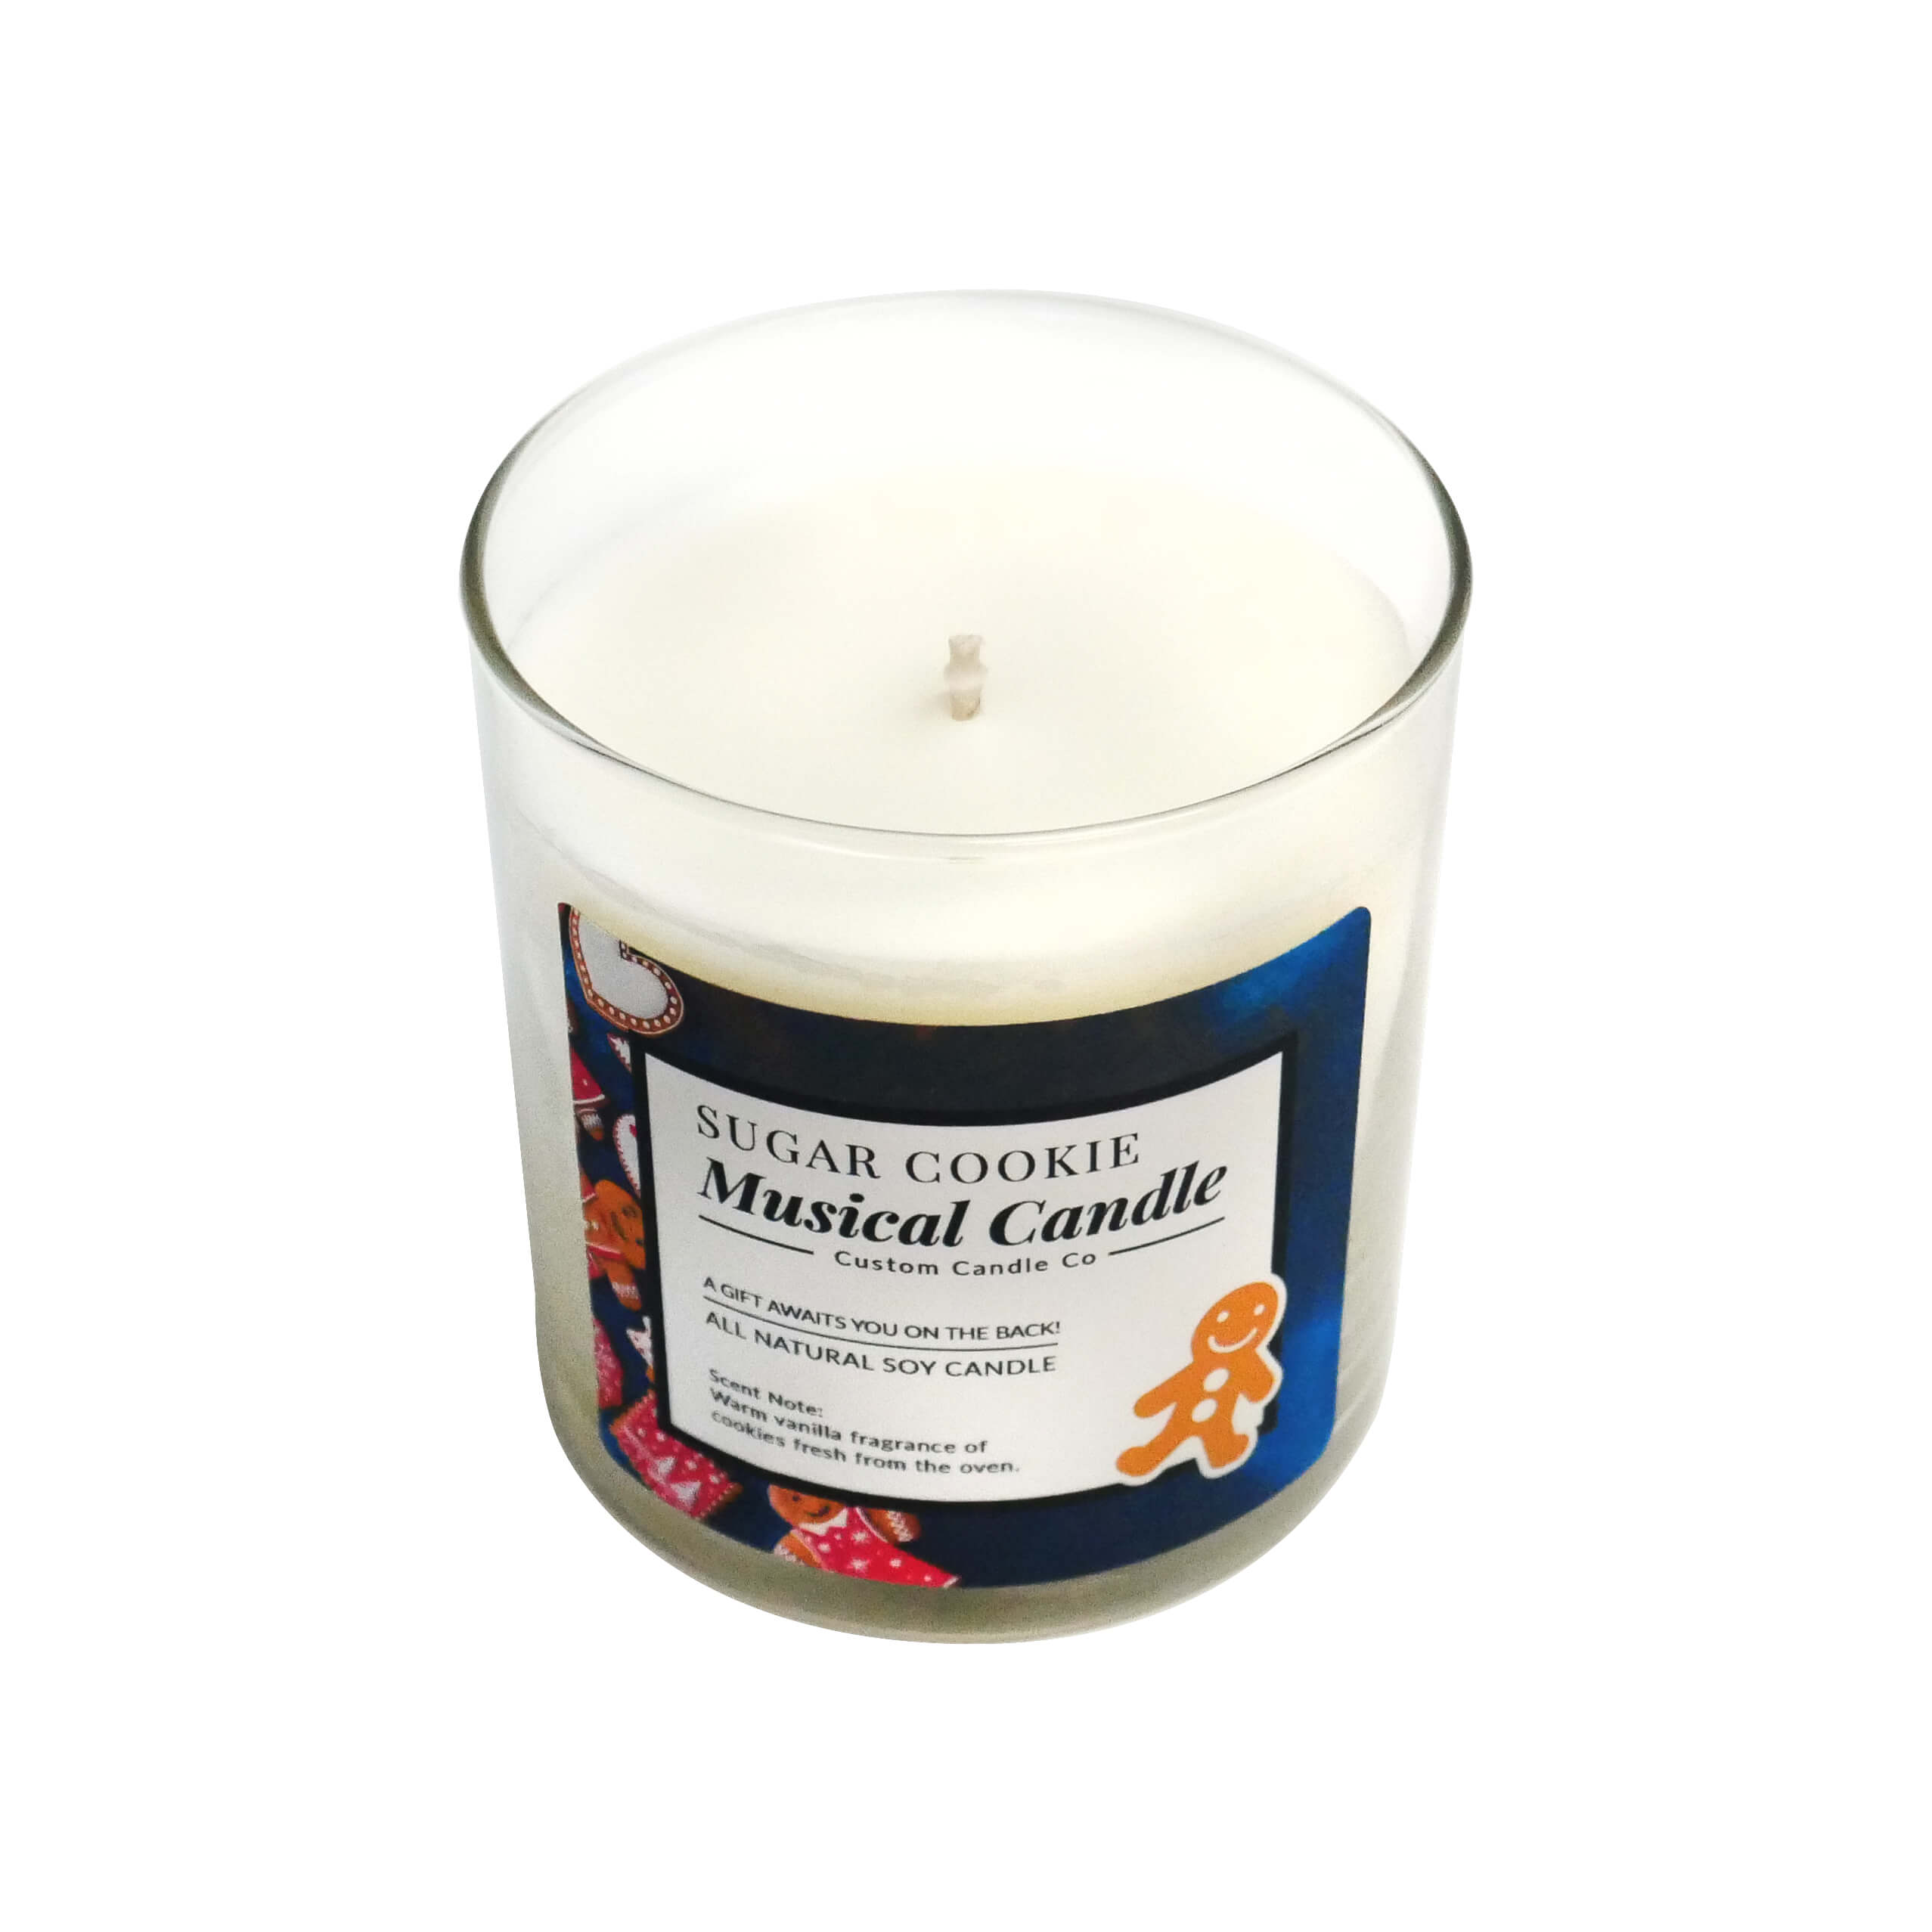 Musical Holiday Candle - Sugar Cookie | Custom Candle Co